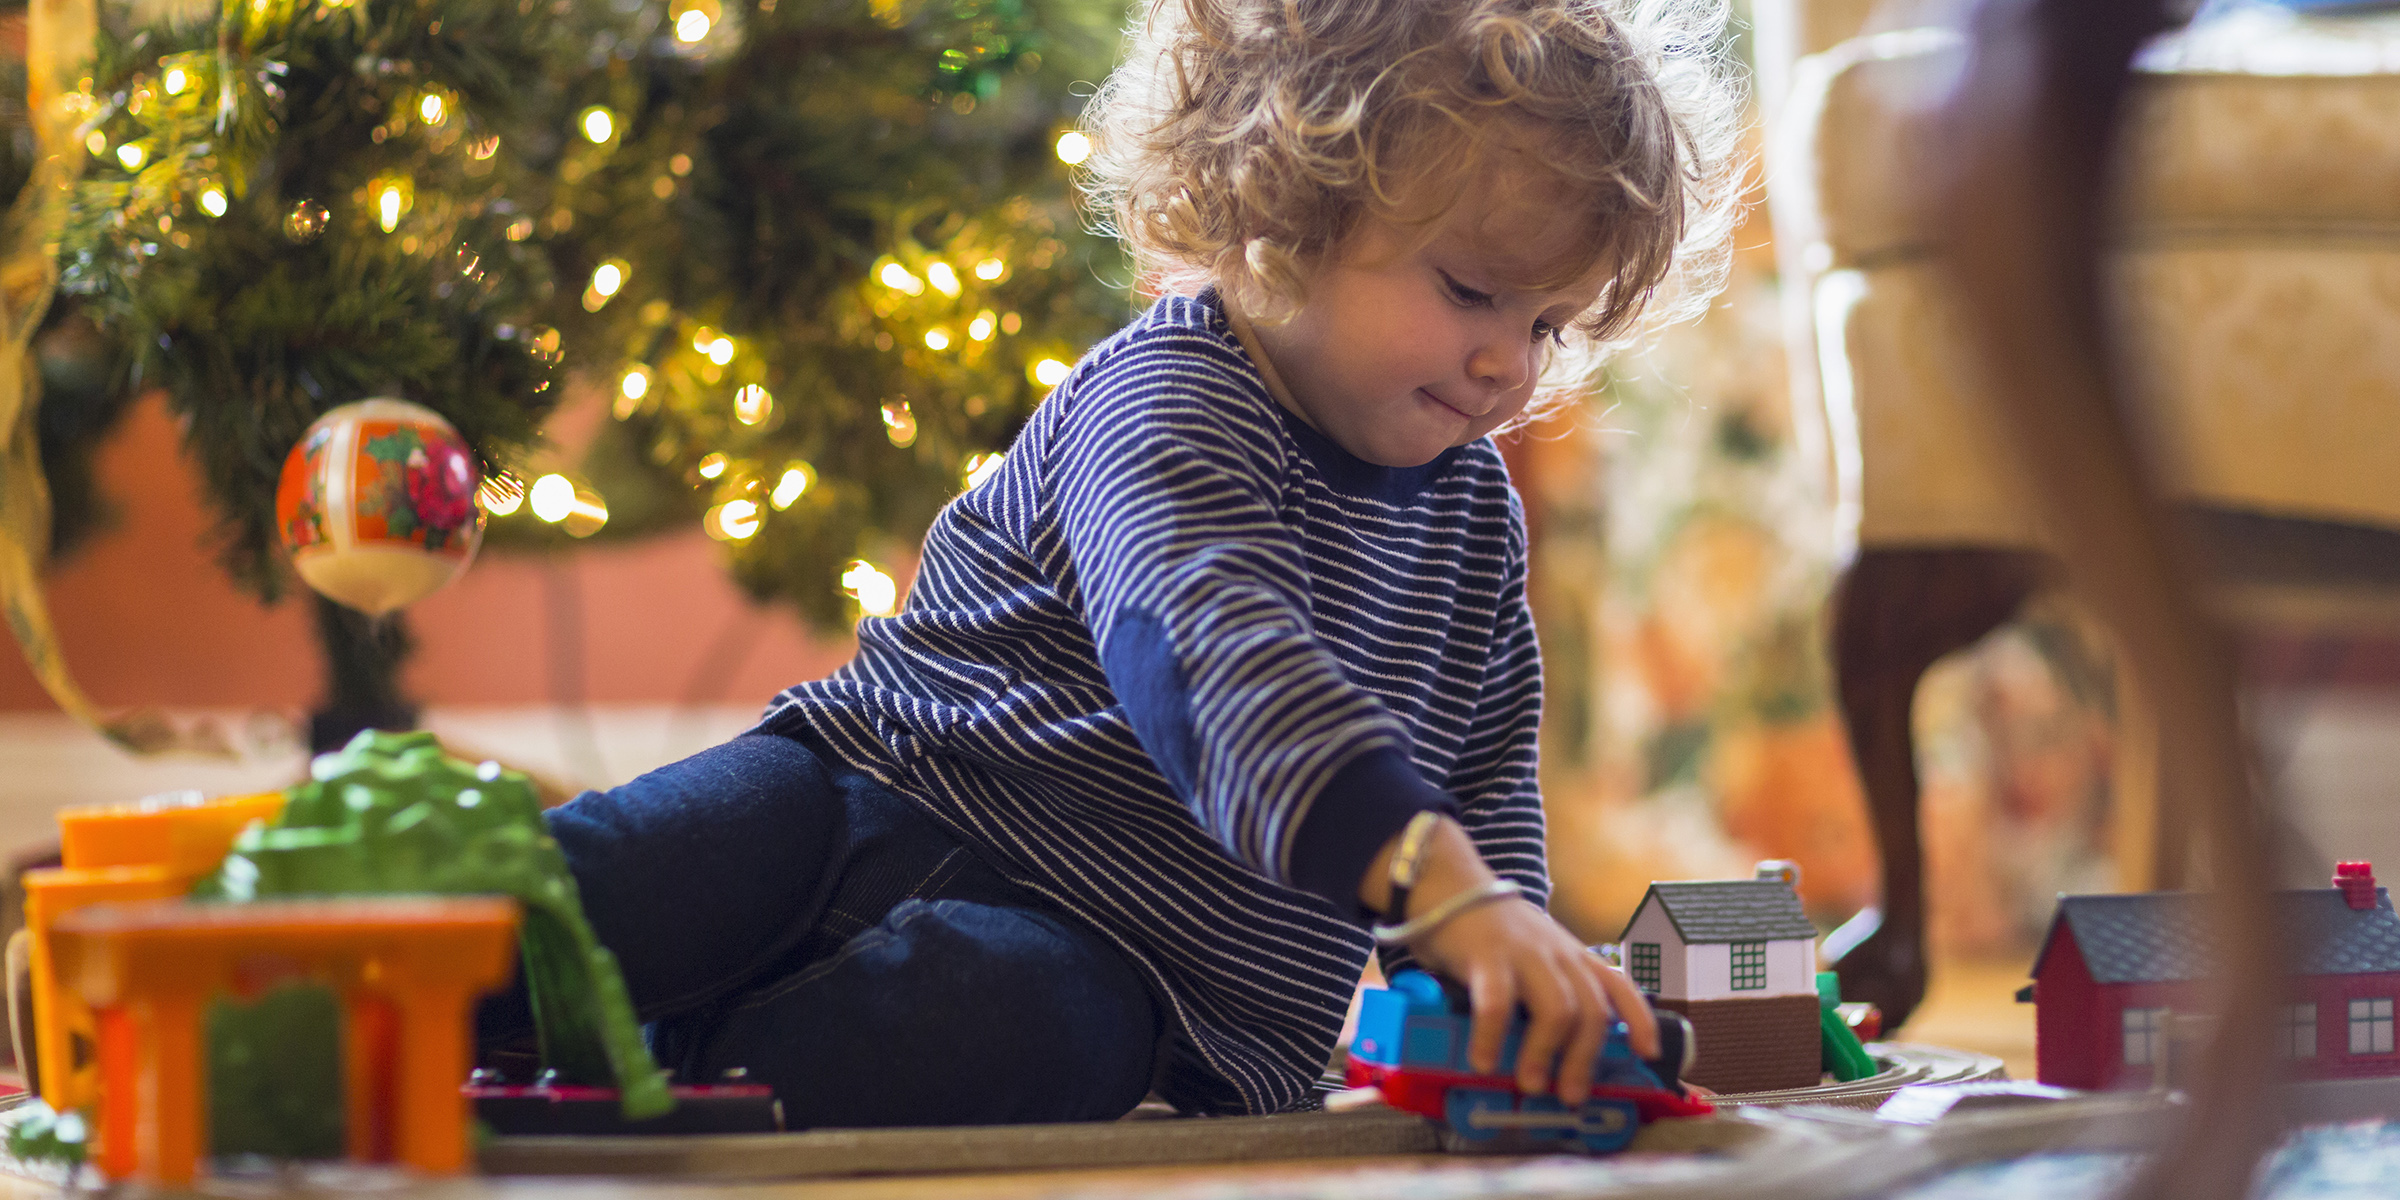 The best gifts for 1-year-olds from our 2018 gift guide